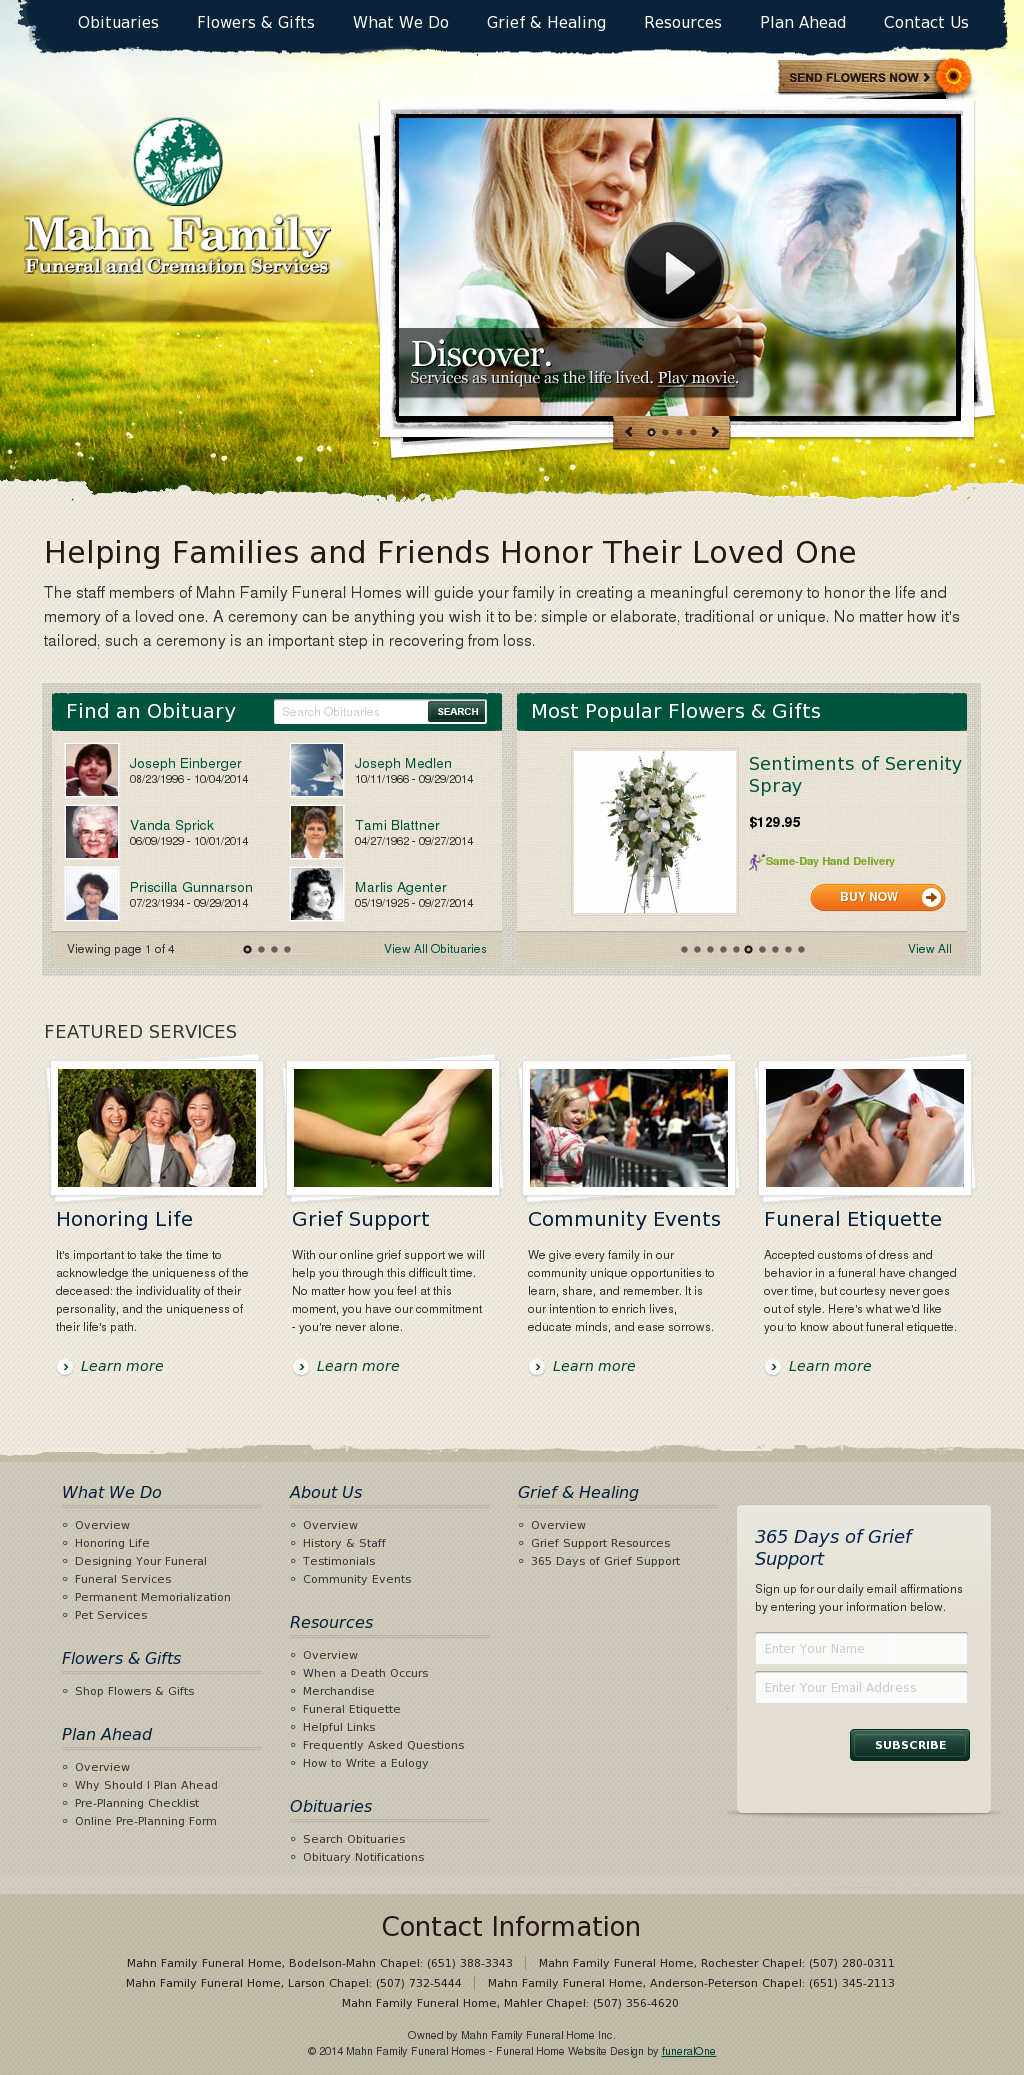 Mahn Family Funeral Home Competitors, Revenue and Employees - Owler